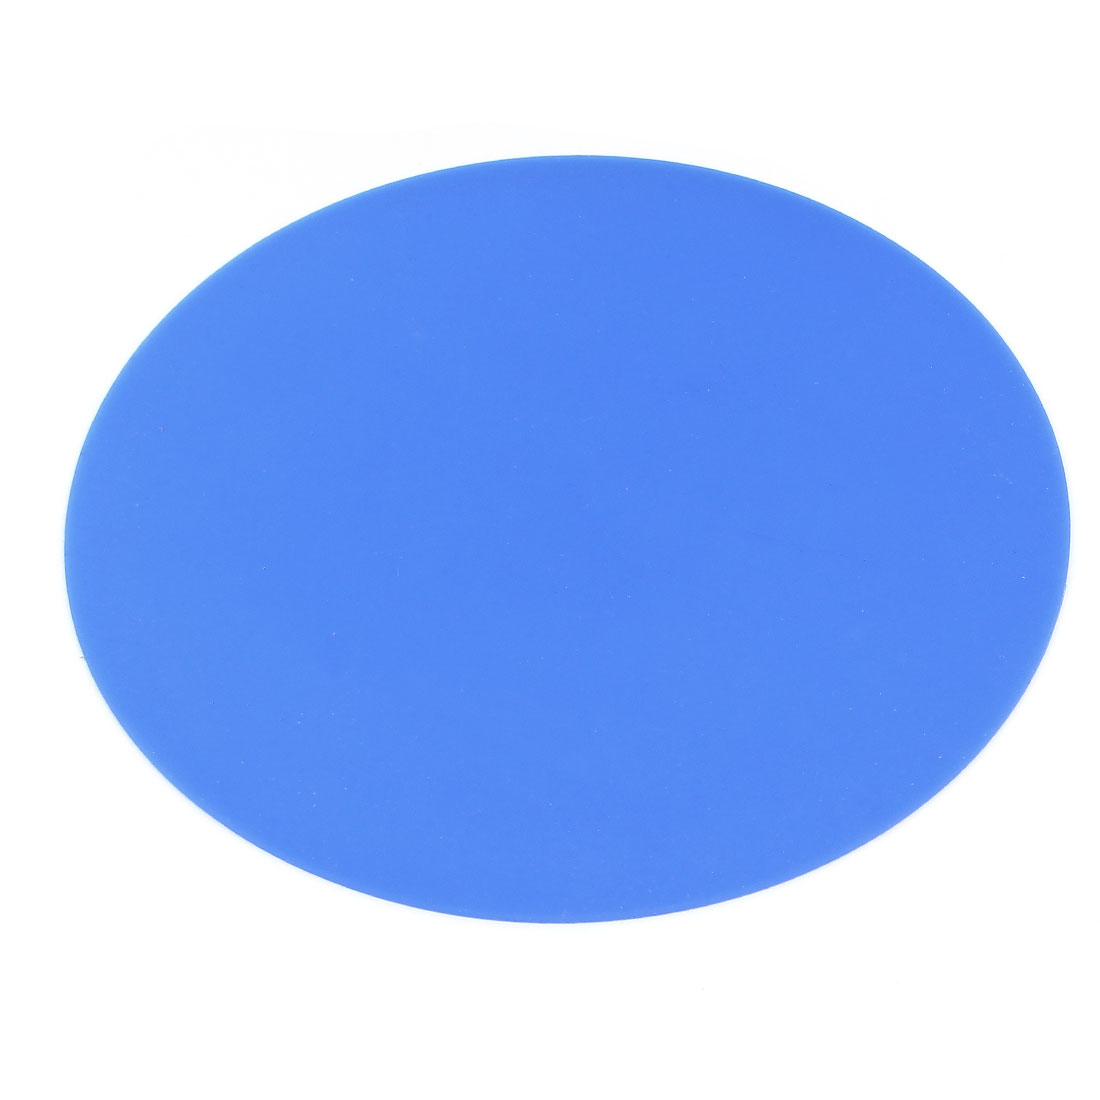 Home Office Blue Round Shape Silicone Mouse Pad Mat for PC Computer